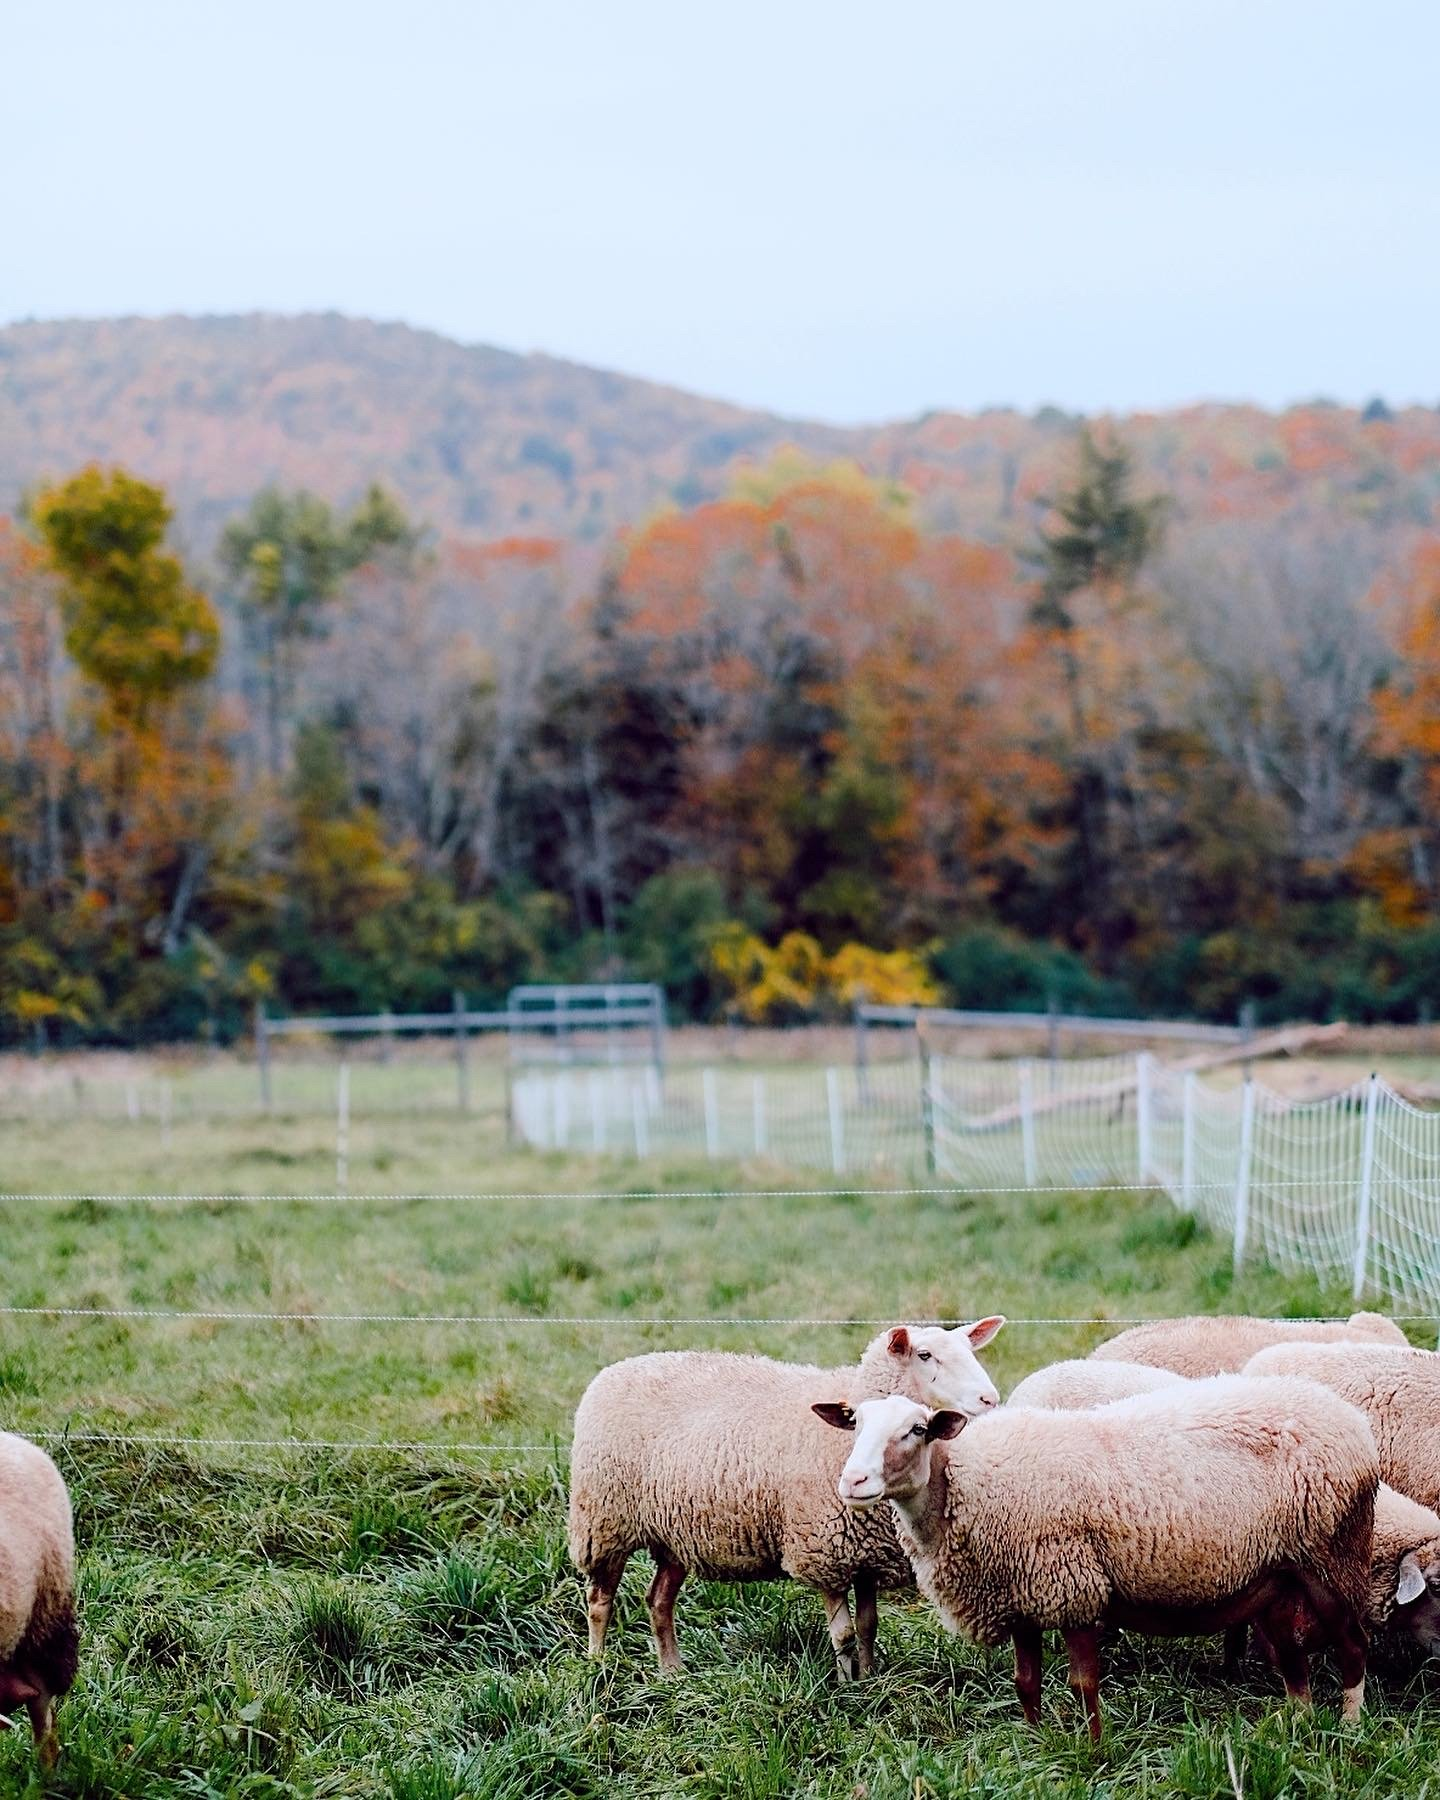 sheep grazing in a pasture with colorful leaves behind it